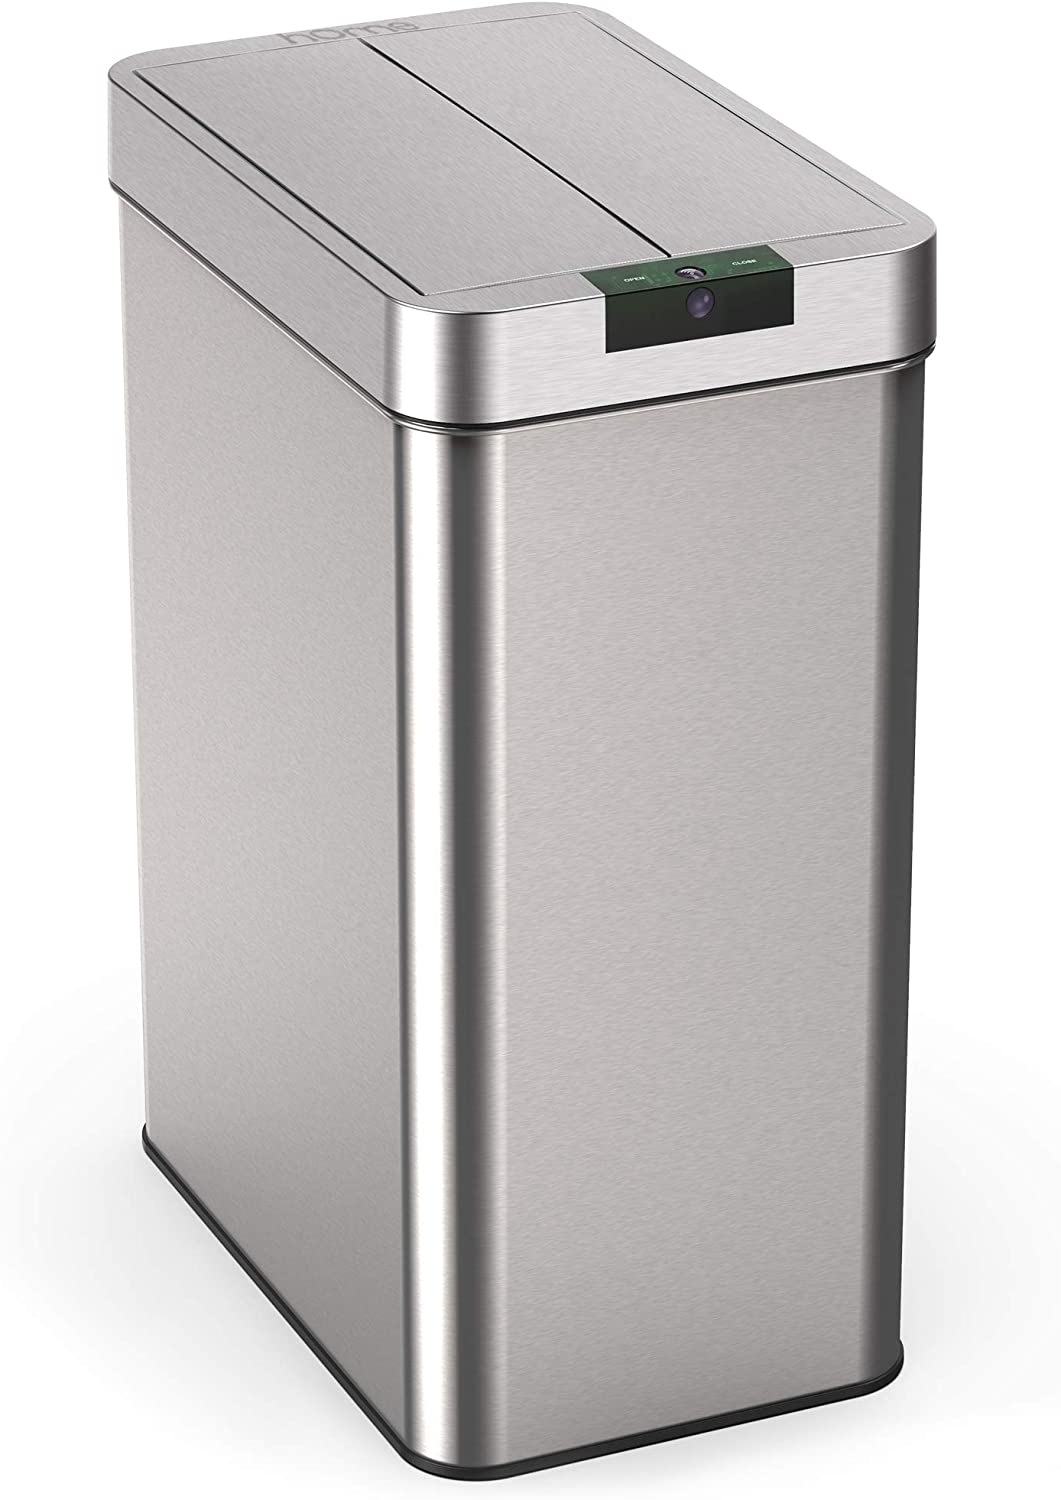 hOmeLabs 13 Gallon Automatic Trash Can for Kitchen - Stainless Steel  Garbage Can with No Touch Motion Sensor Butterfly Lid and Infrared  Technology